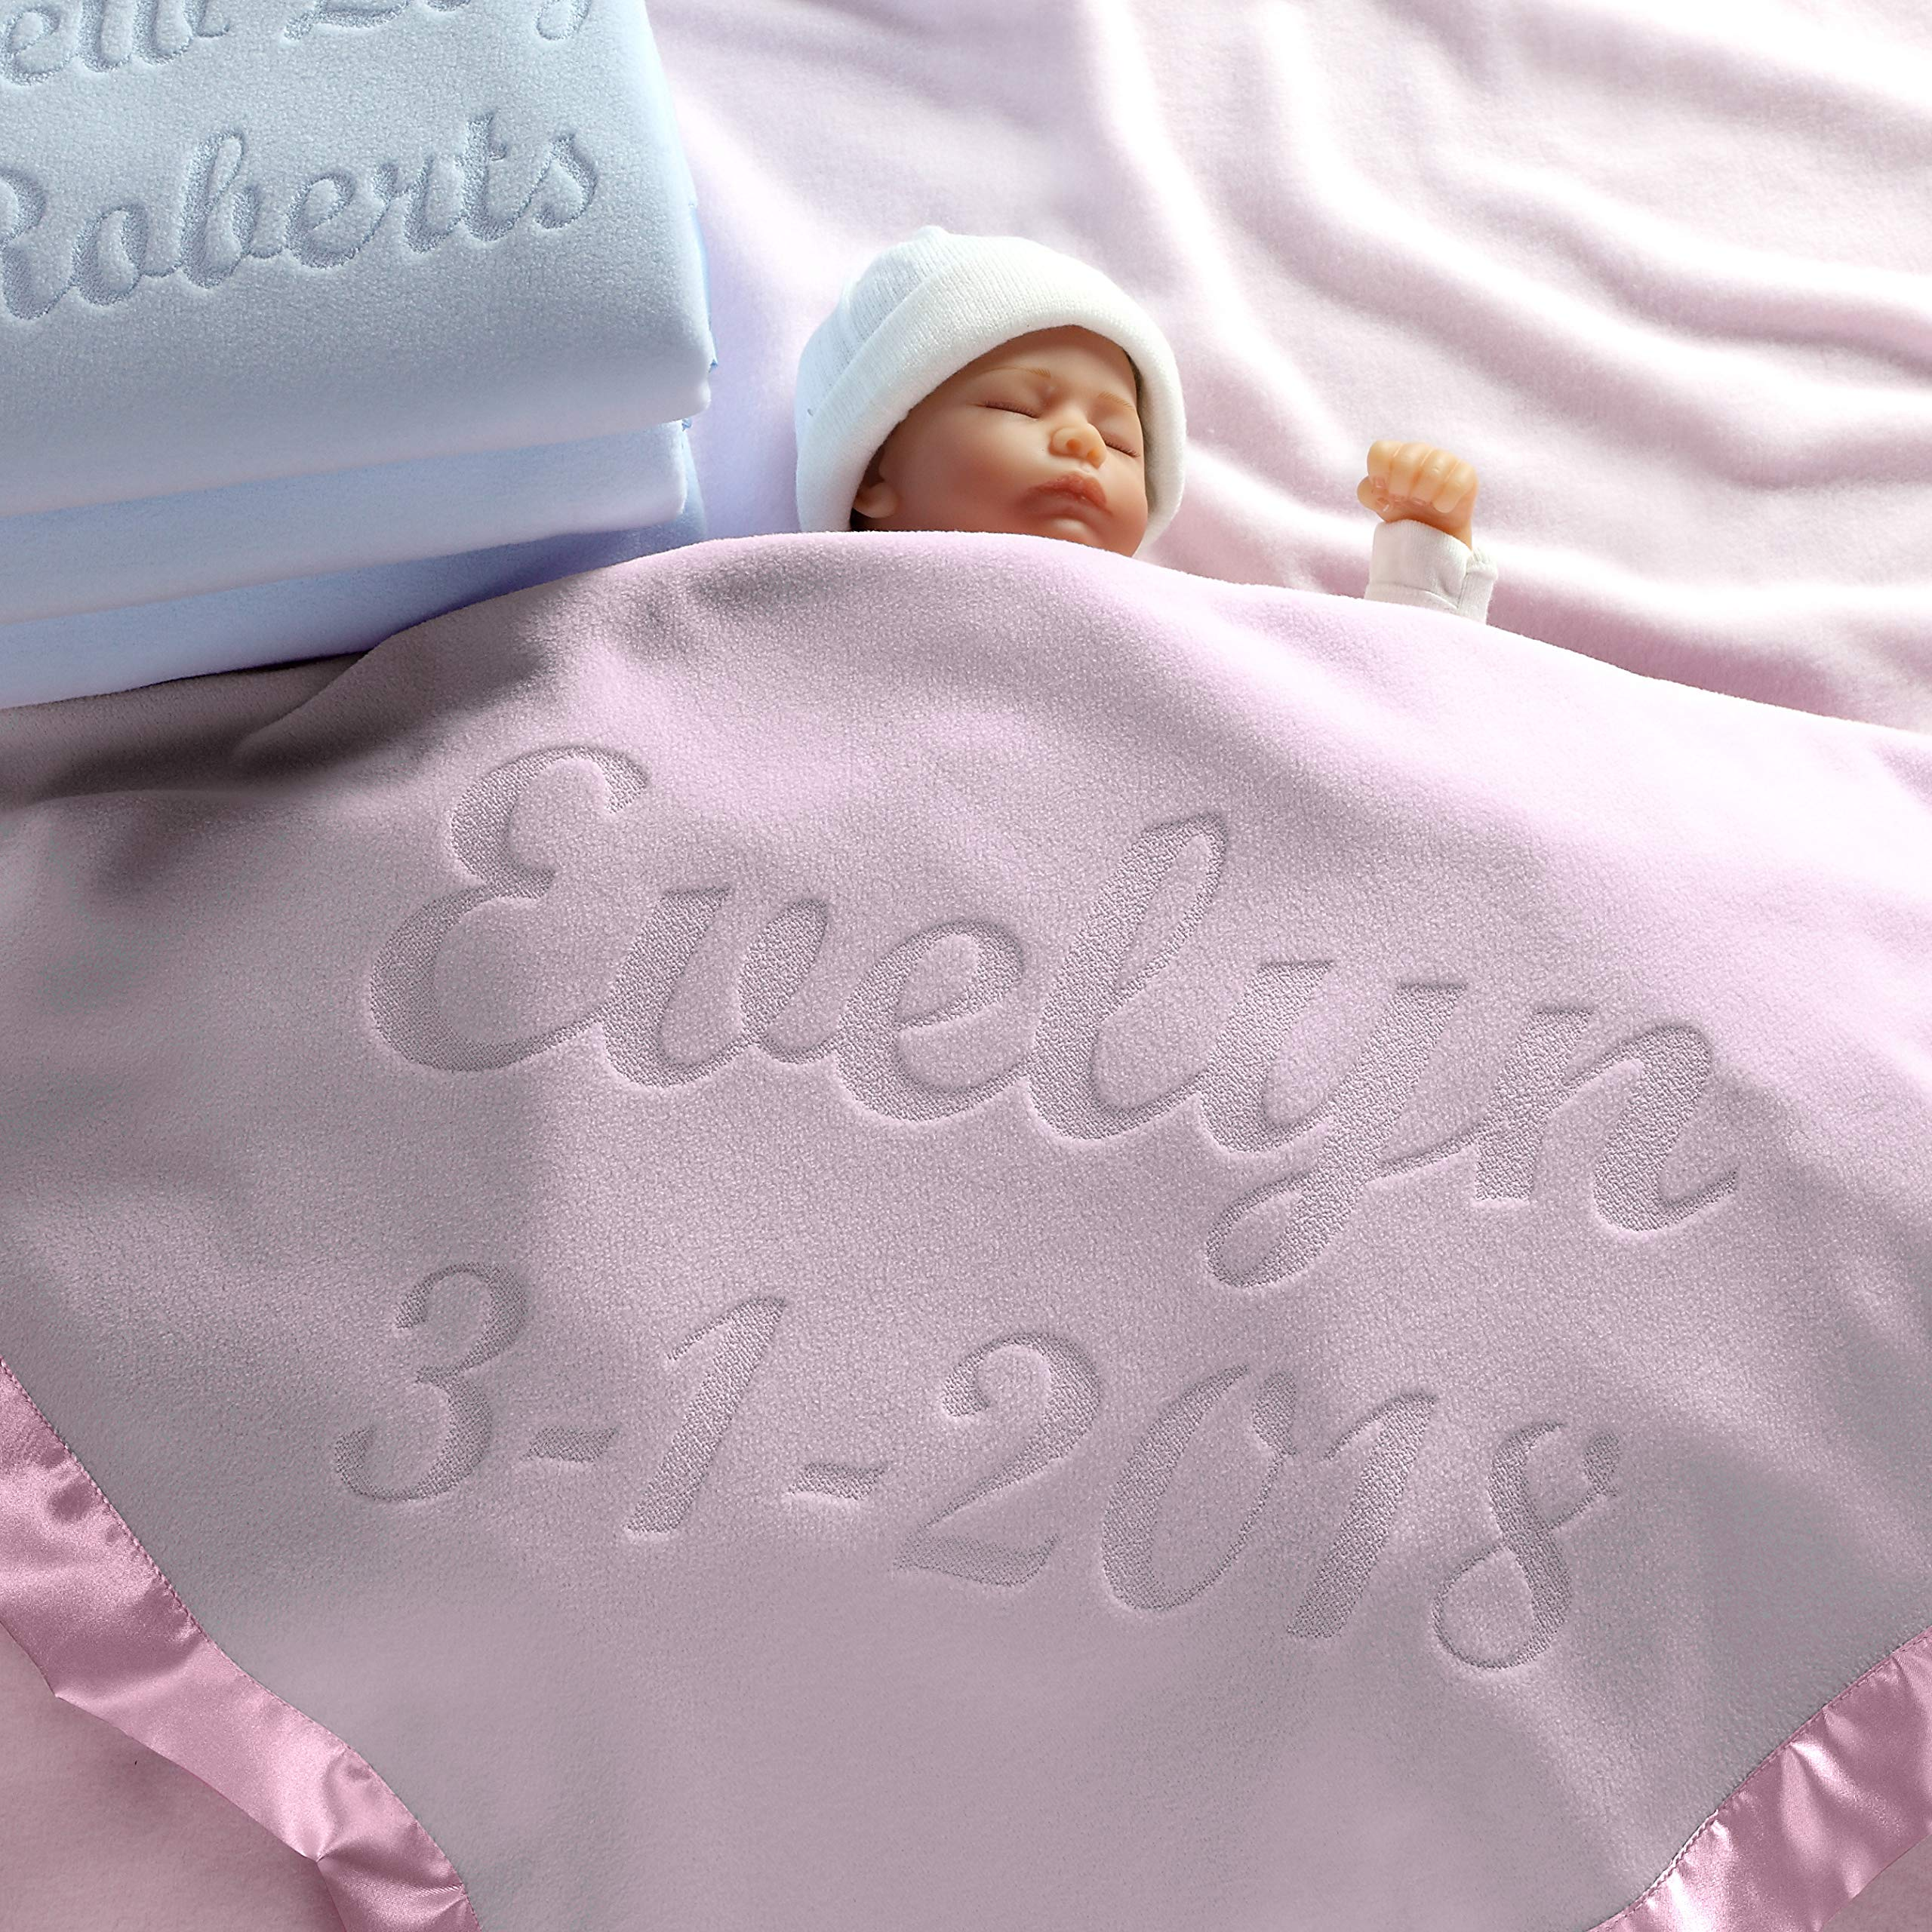 Personalized Baby Blankets (Multiple Text Lines), Boys or Girls Gifts by Custom Catch